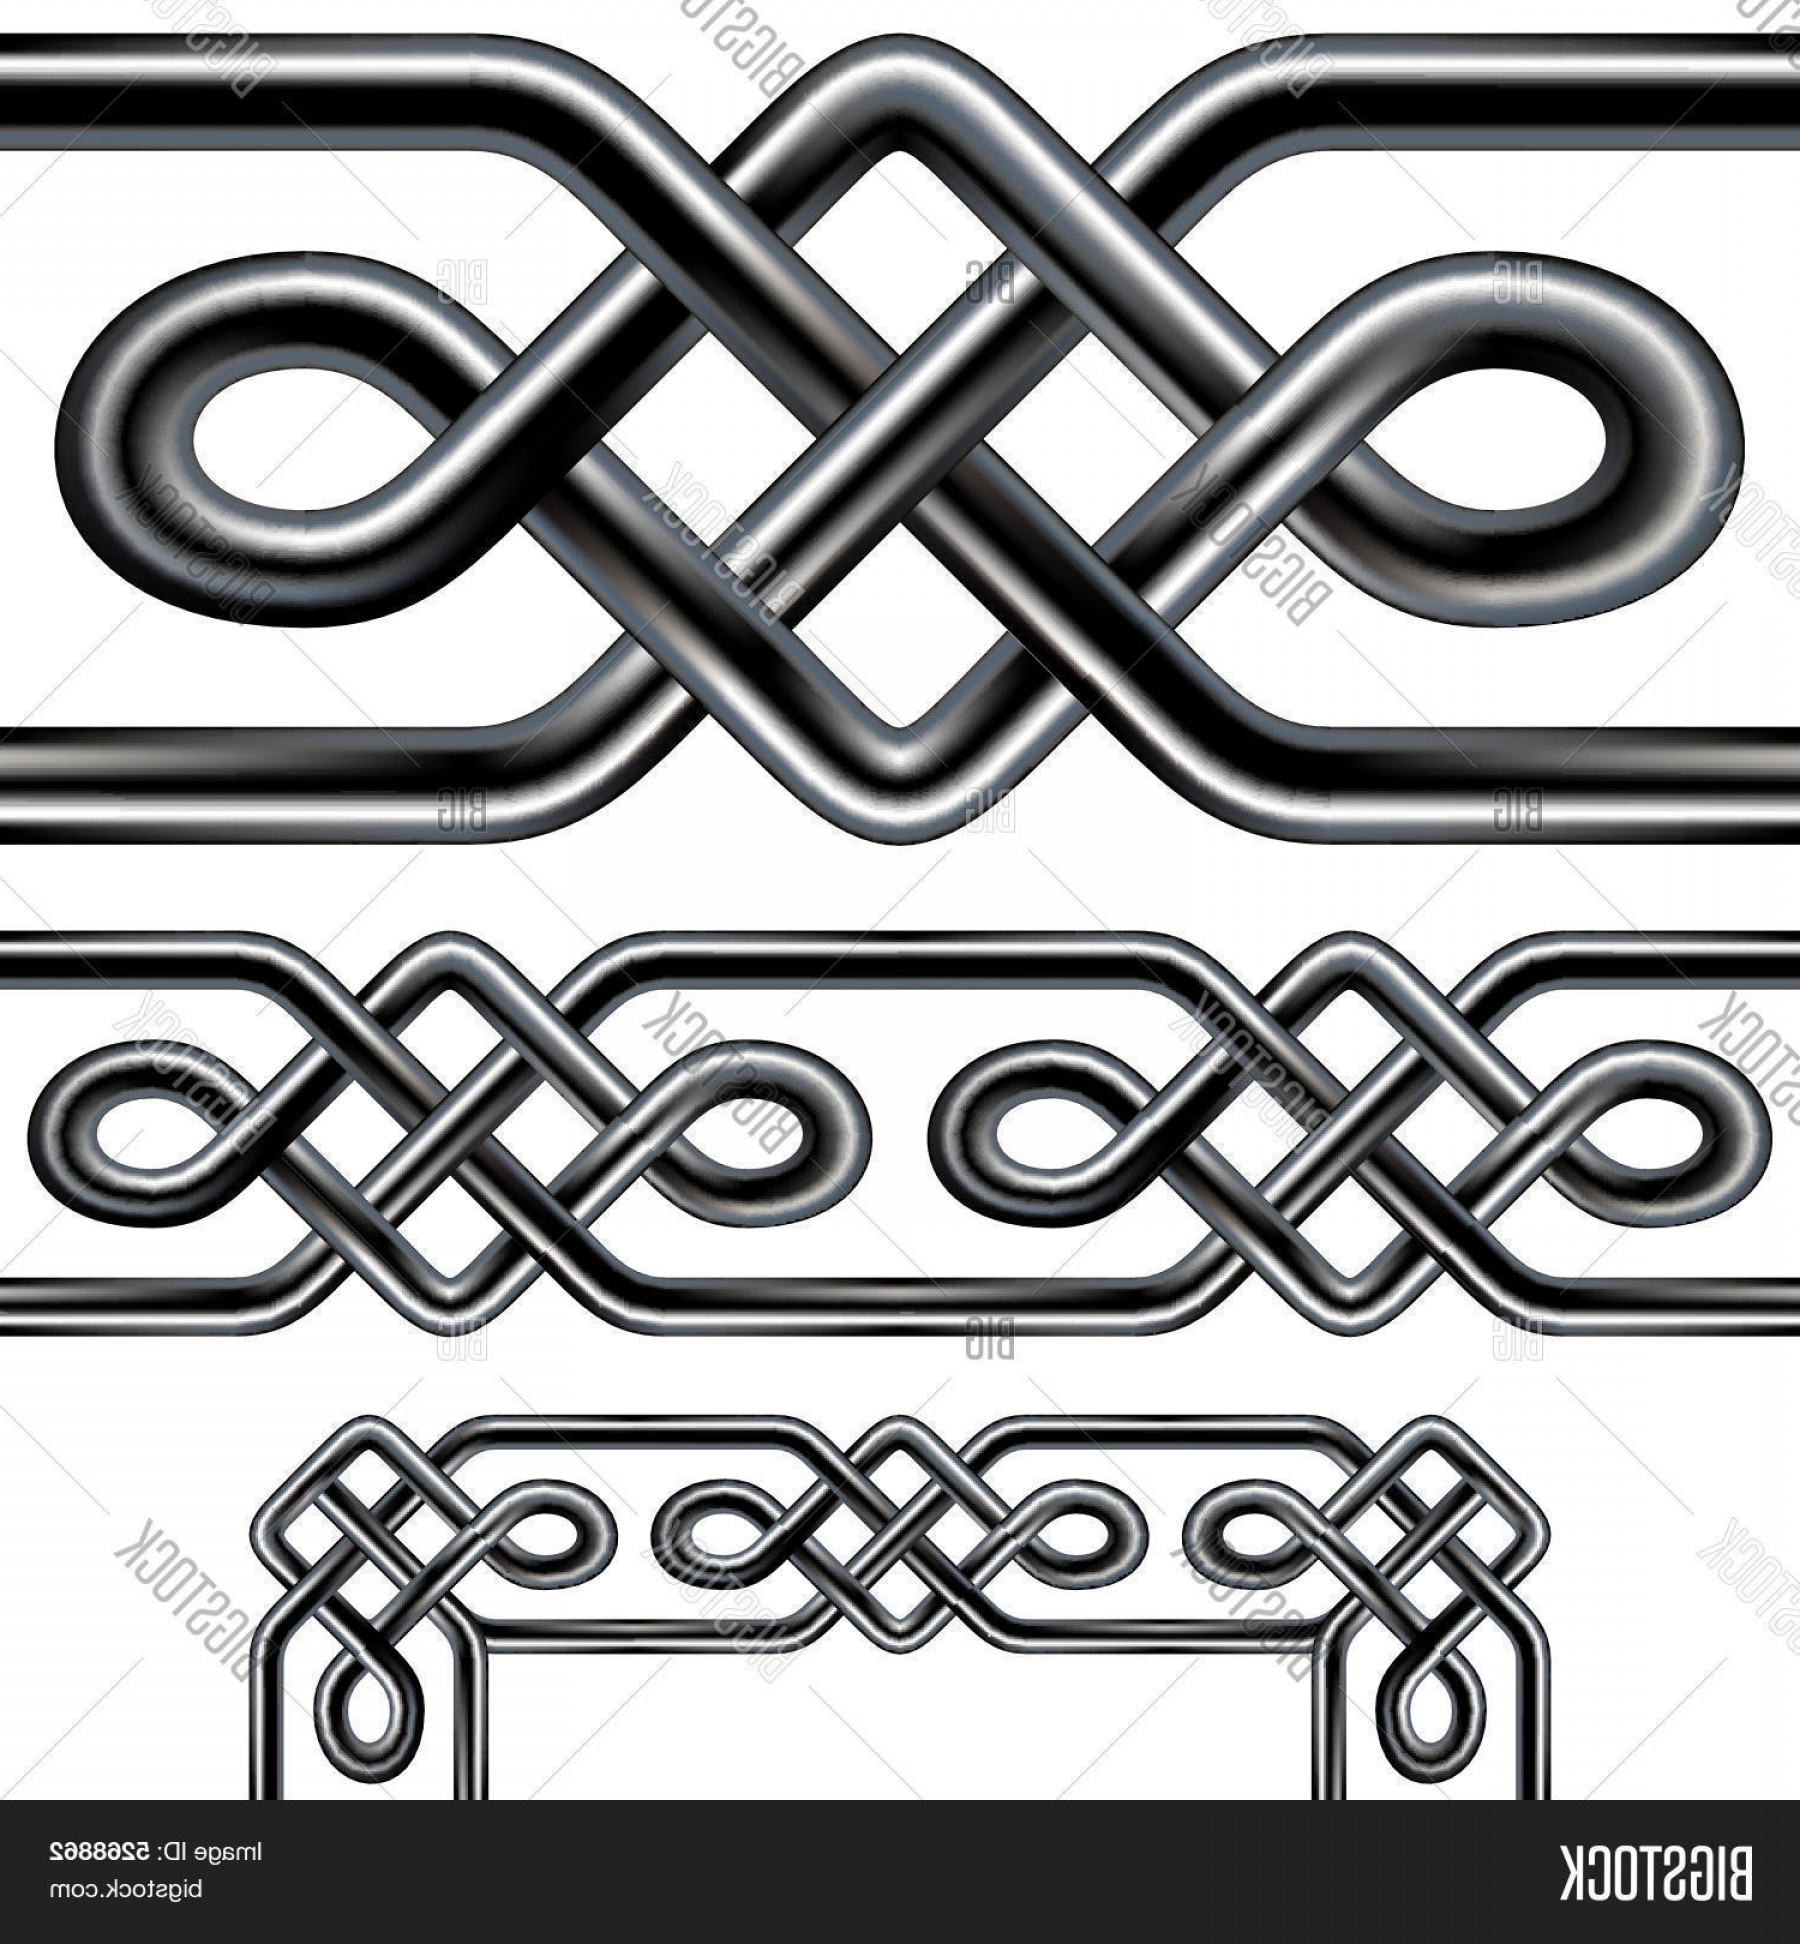 Design Vector Image Of Rope: Stock Vector Celtic Rope Seamless Border Design With Corner Elements